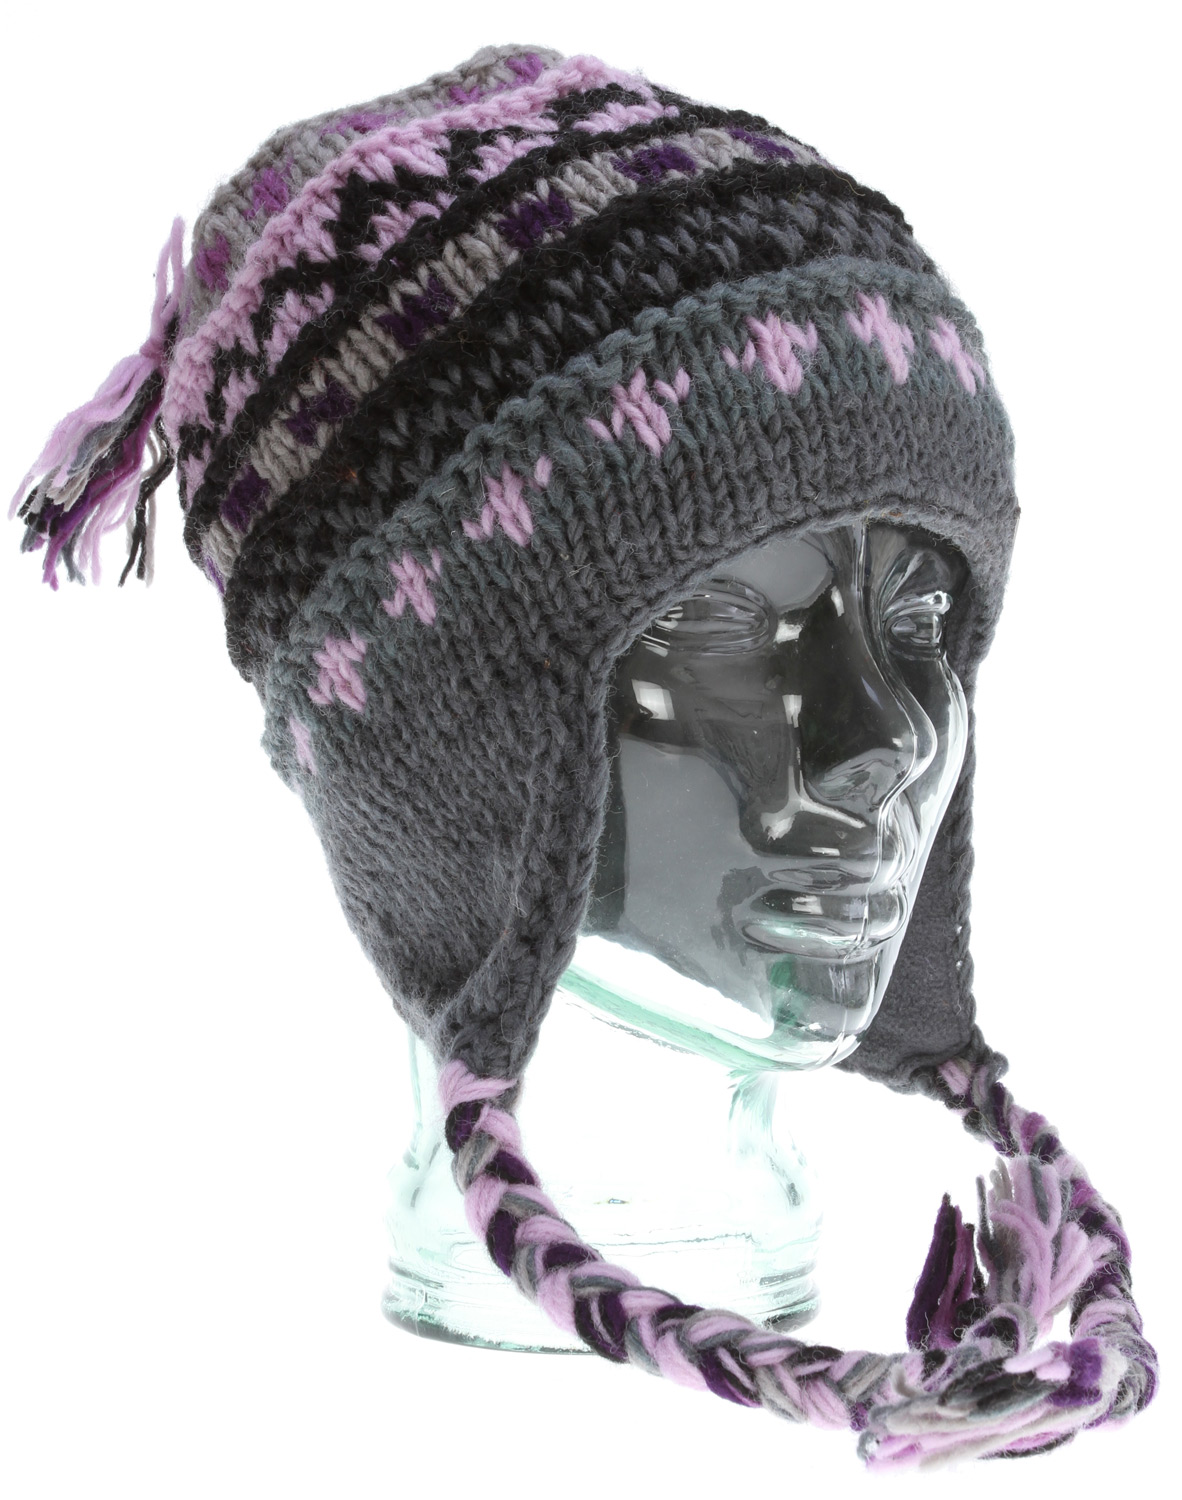 The colorful Marci is fun and intricately detailed, but its 100% Nepalese wool and ear flaps don't slack on cold protection.Key Features of the Prana Marci Tassel Beanie: Intricate intarsia pattern Ear flaps with braided multi colored tassels Fleeced inner band Standard Fit 100% Wool - $39.00